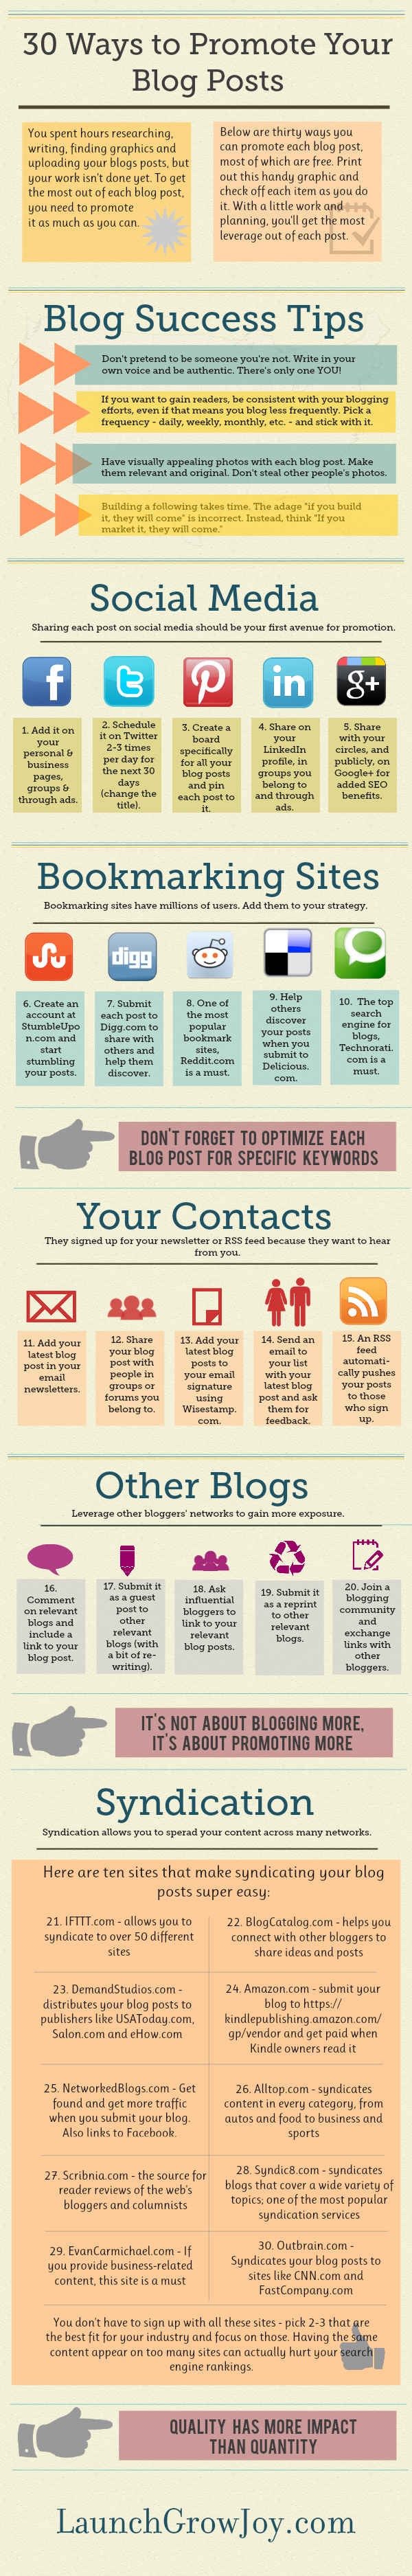 How to Promote Blog Posts